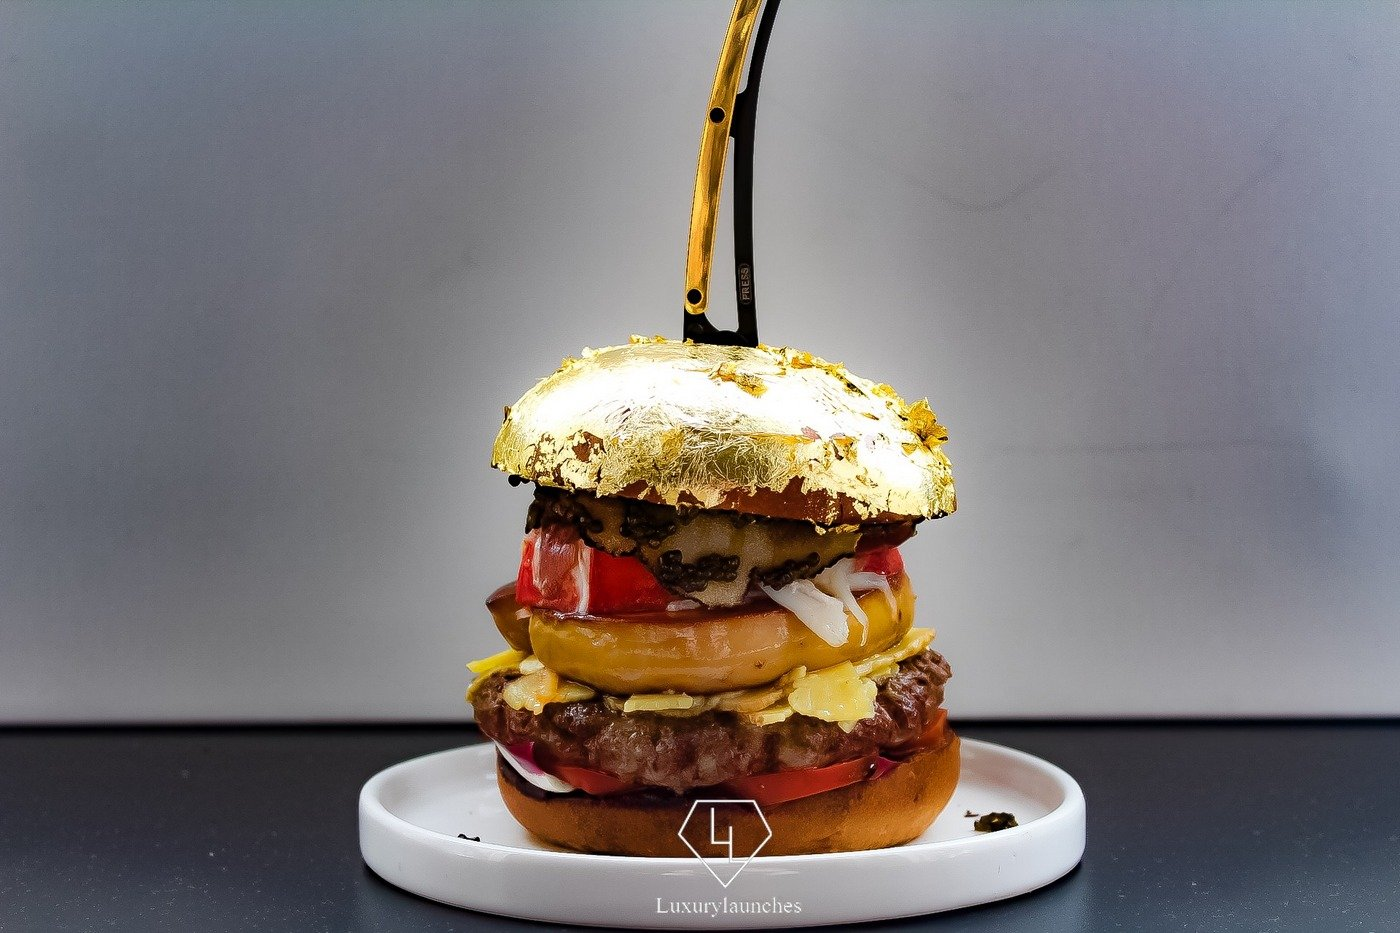 Not your average Big Mac - These are the most expensive hamburgers ever - cover